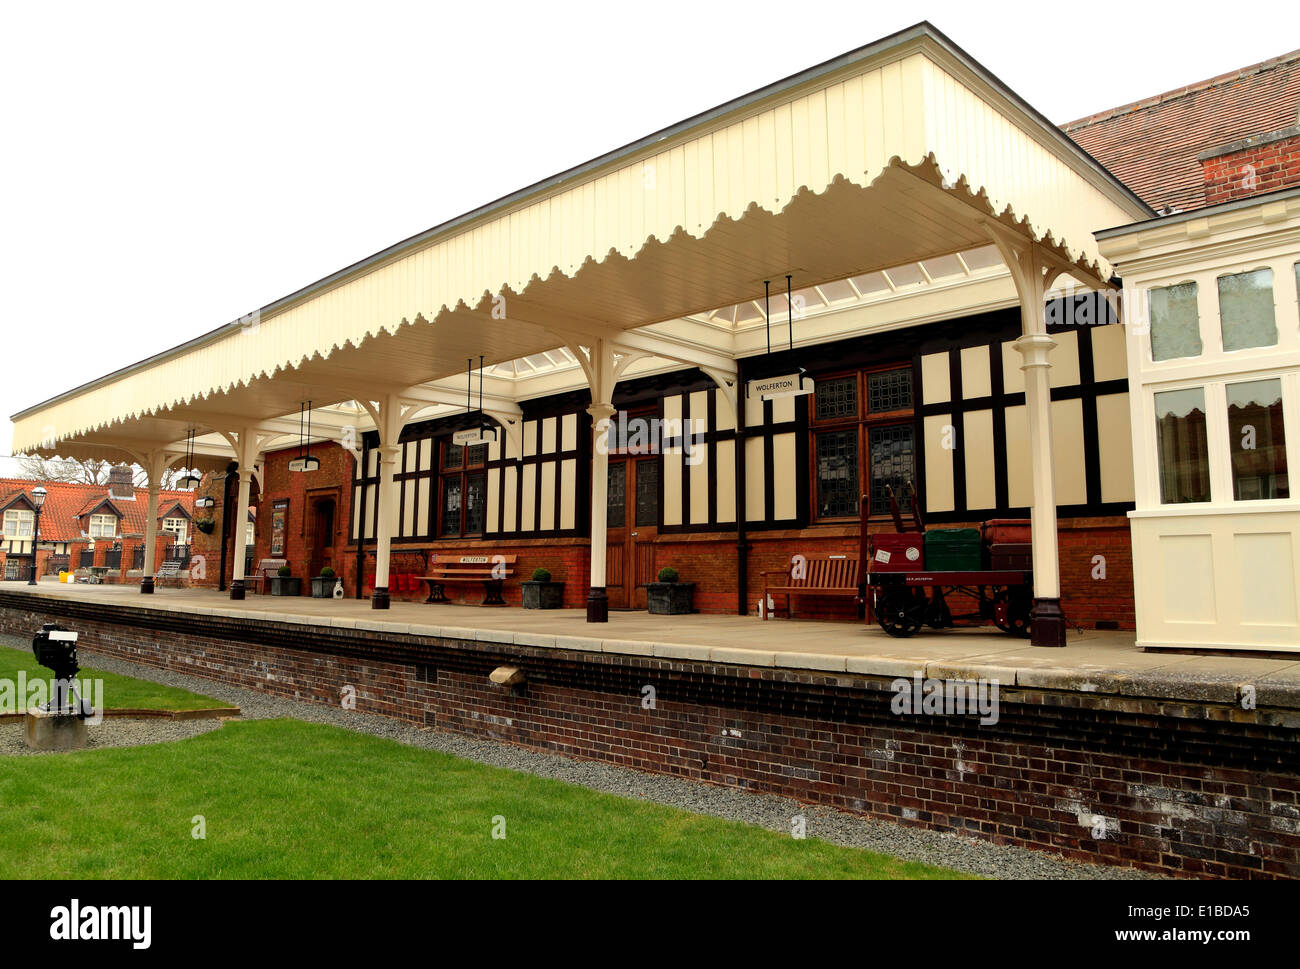 Wolferton, The Royal Railway Station, Norfolk, England UK, p preserved 19th century English stations building buildings platform - Stock Image